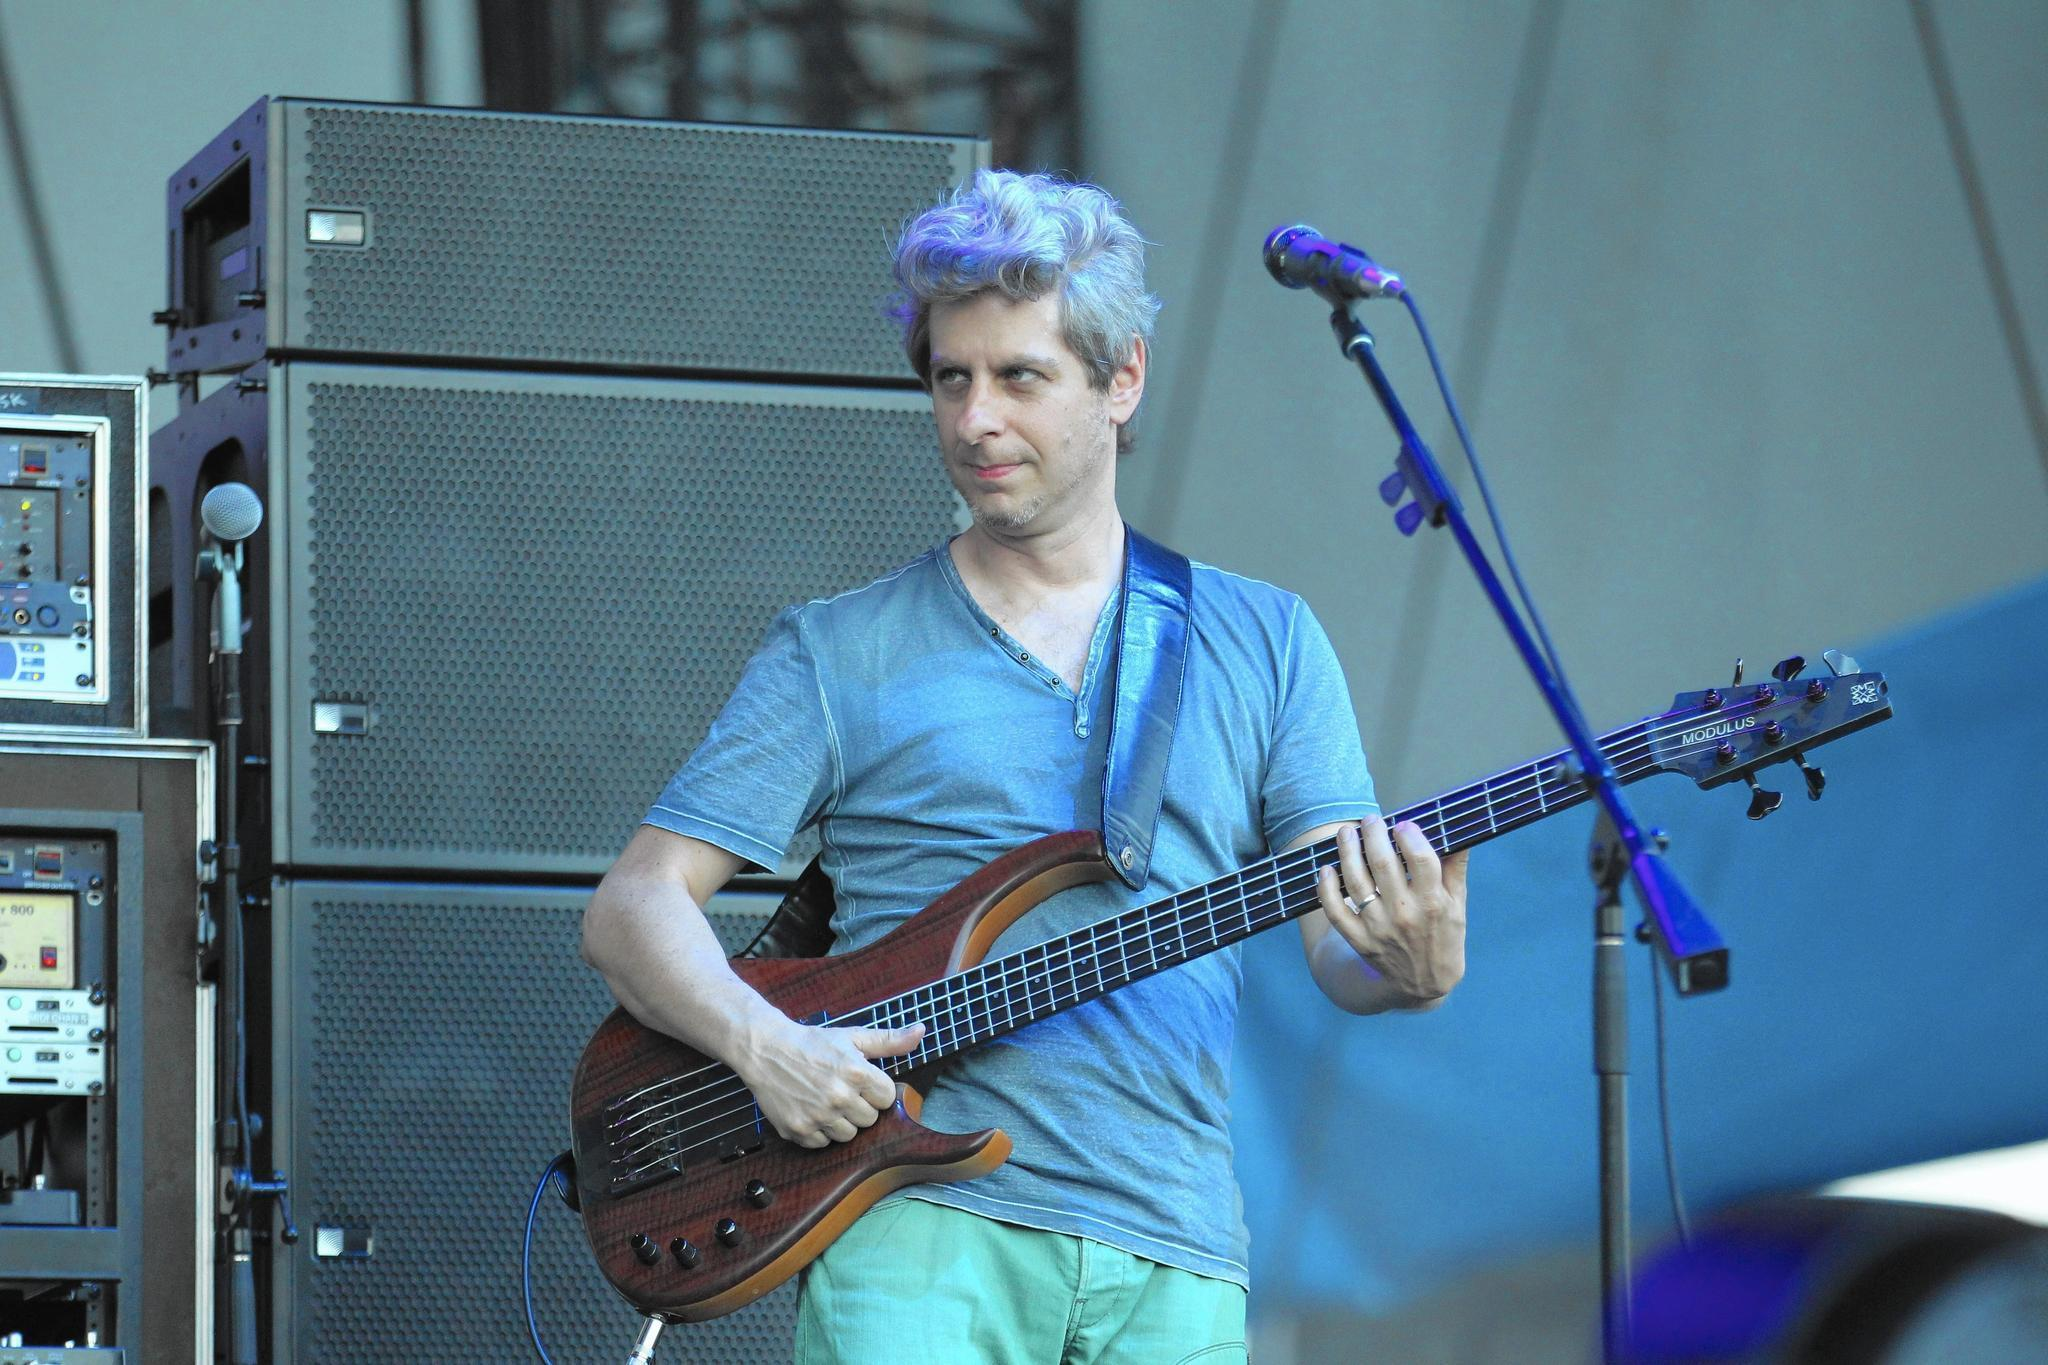 Phish S Mike Gordon On Musical Flow Meditation And His